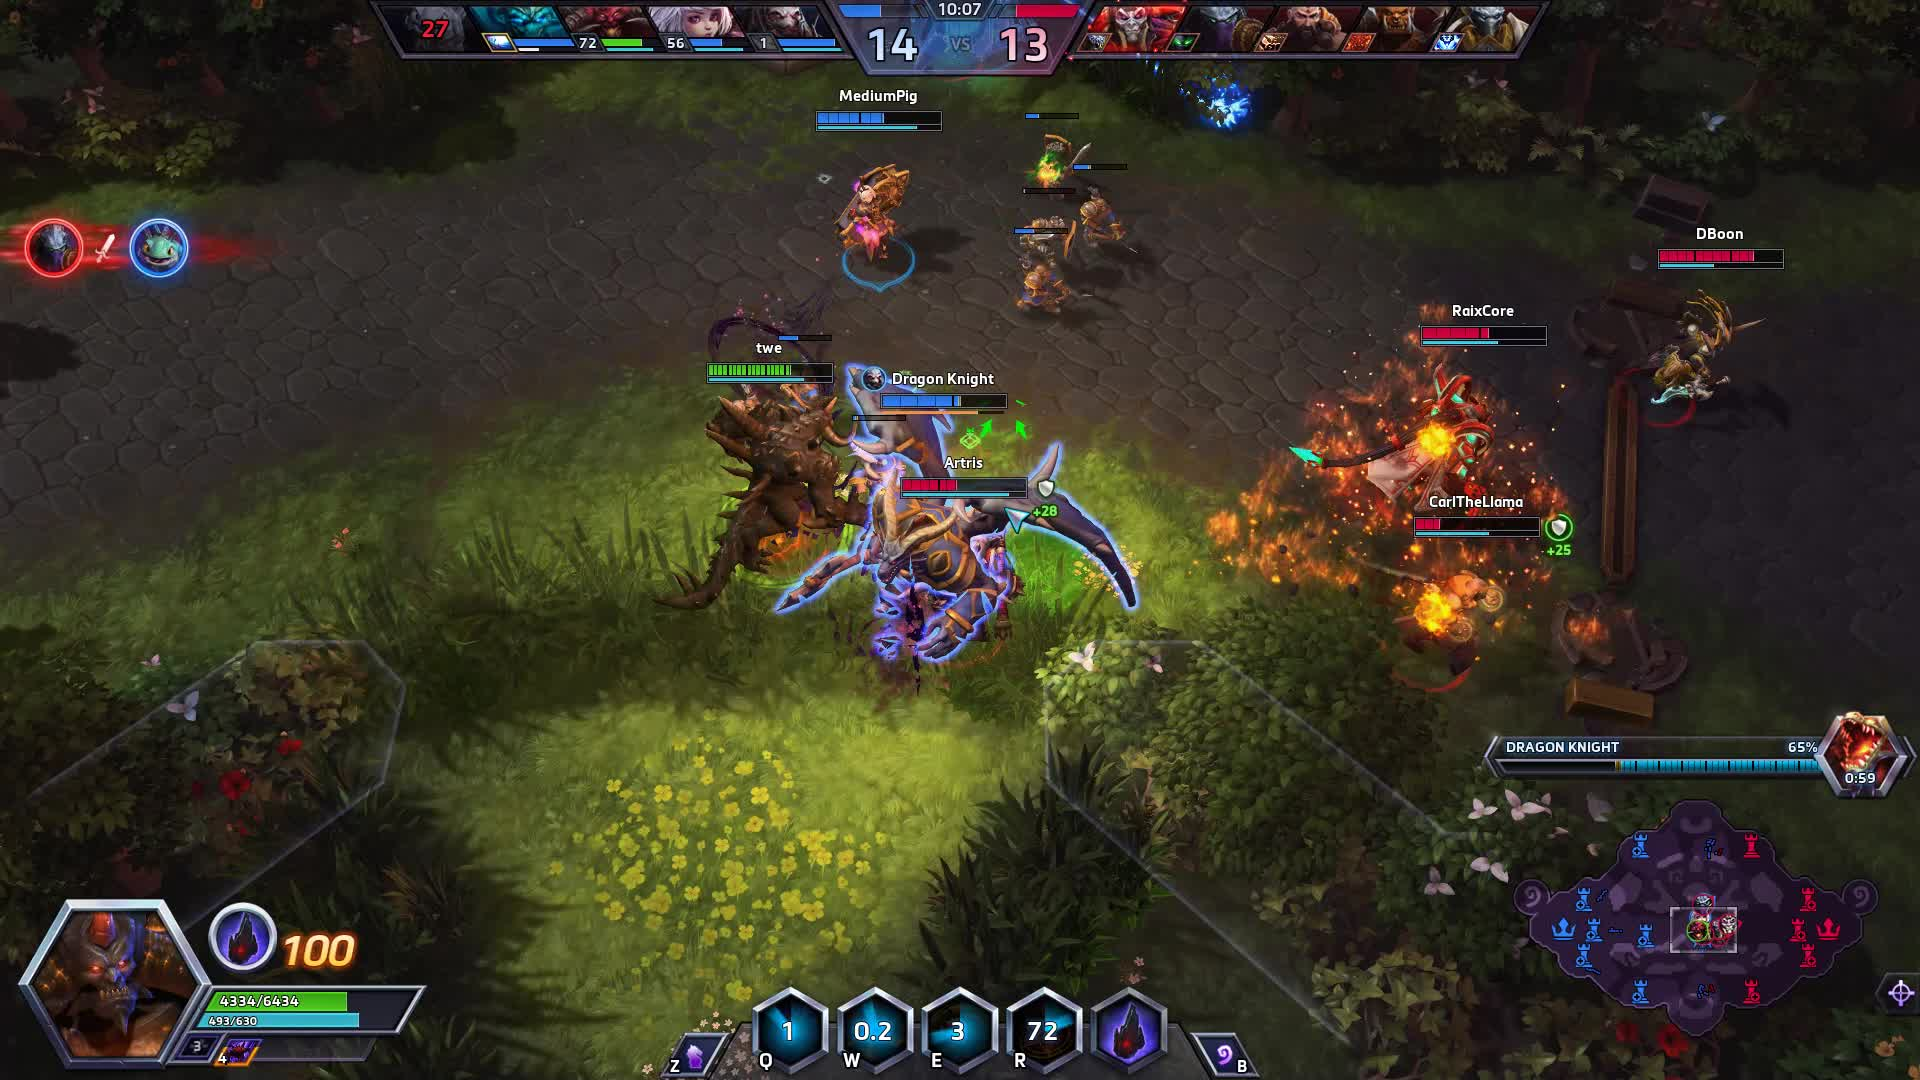 heroesofthestorm, Heroes of the Storm 2018.11.30 - 00.14.01.02.DVR GIFs